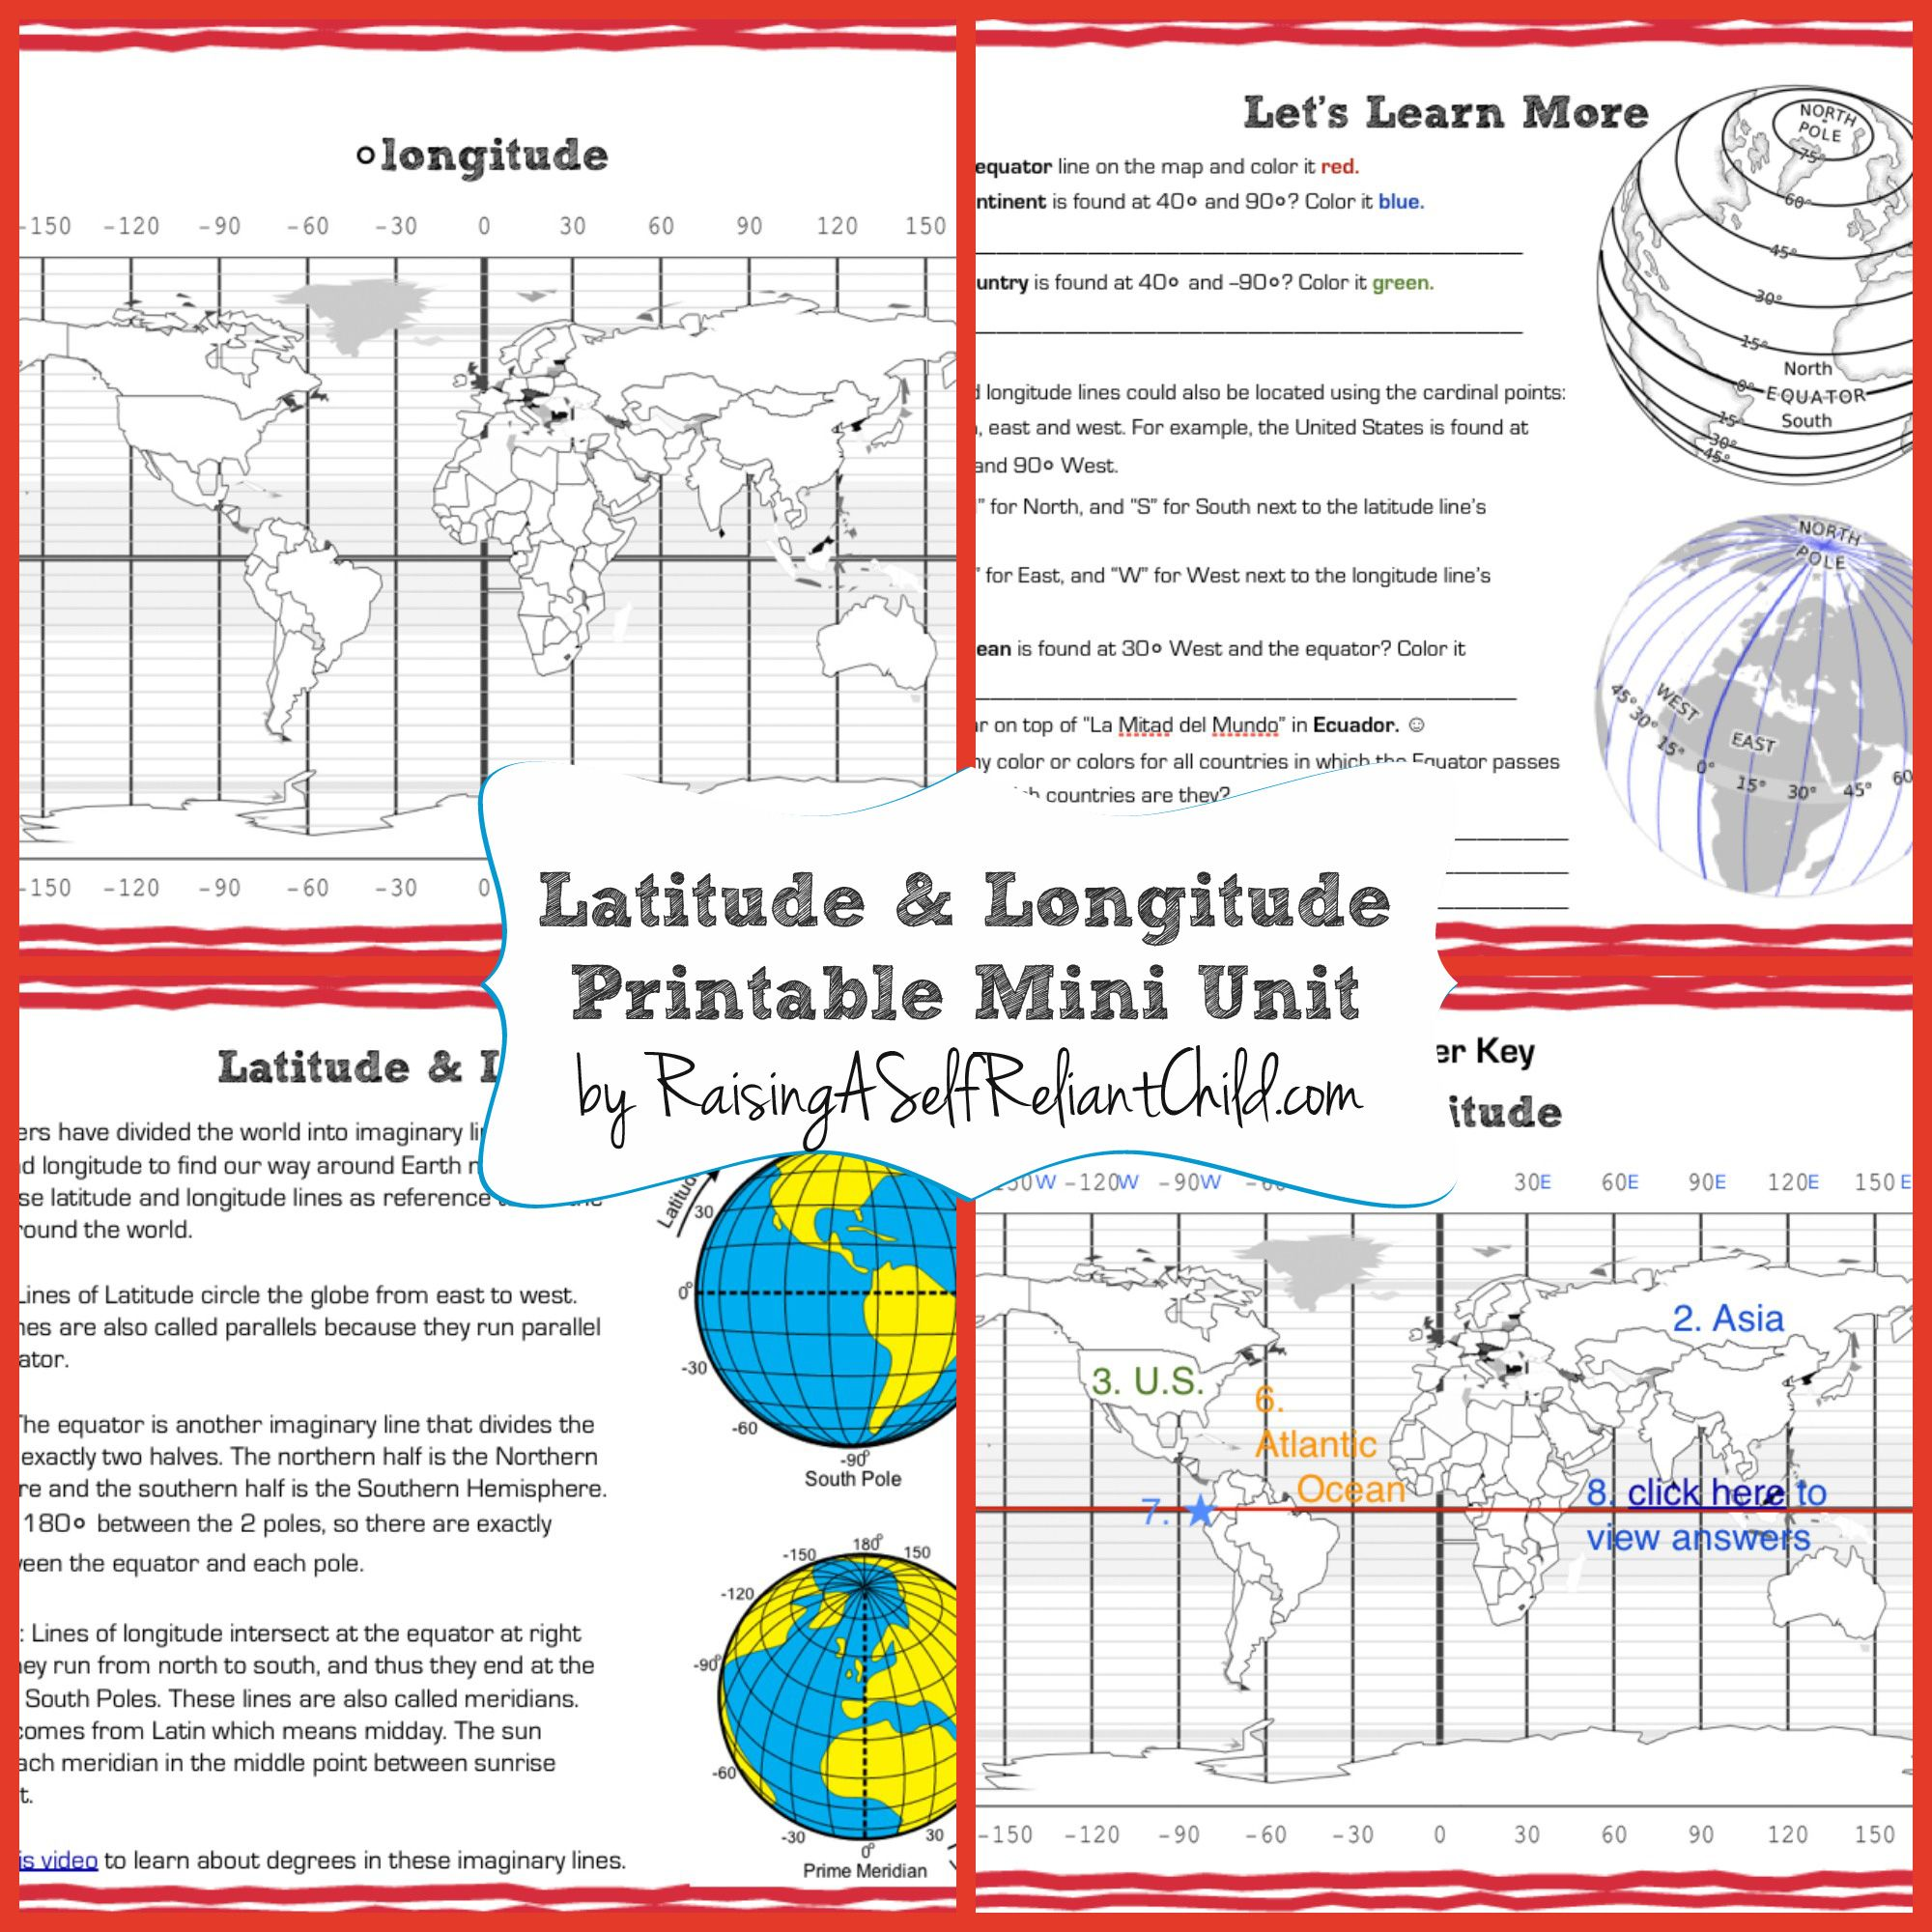 Worksheets Latitude And Longitude Worksheets For Kids free printable mini unit latitude and longitude for kids kids